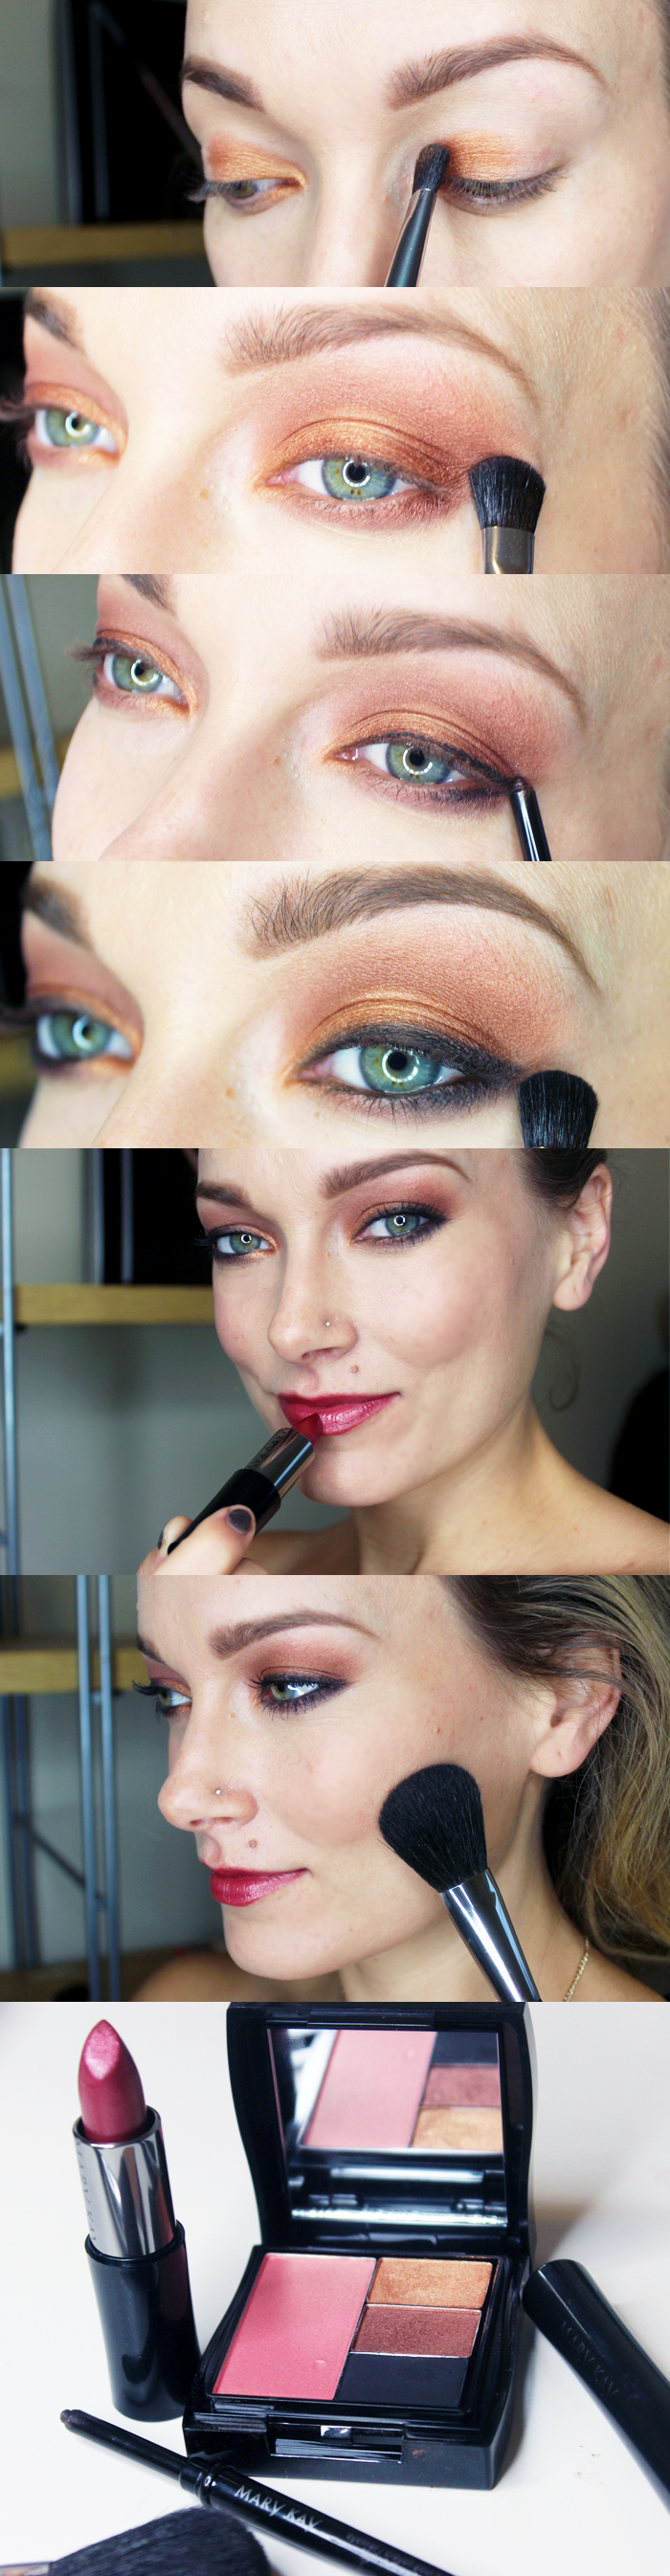 mary kay makeup look1 copy